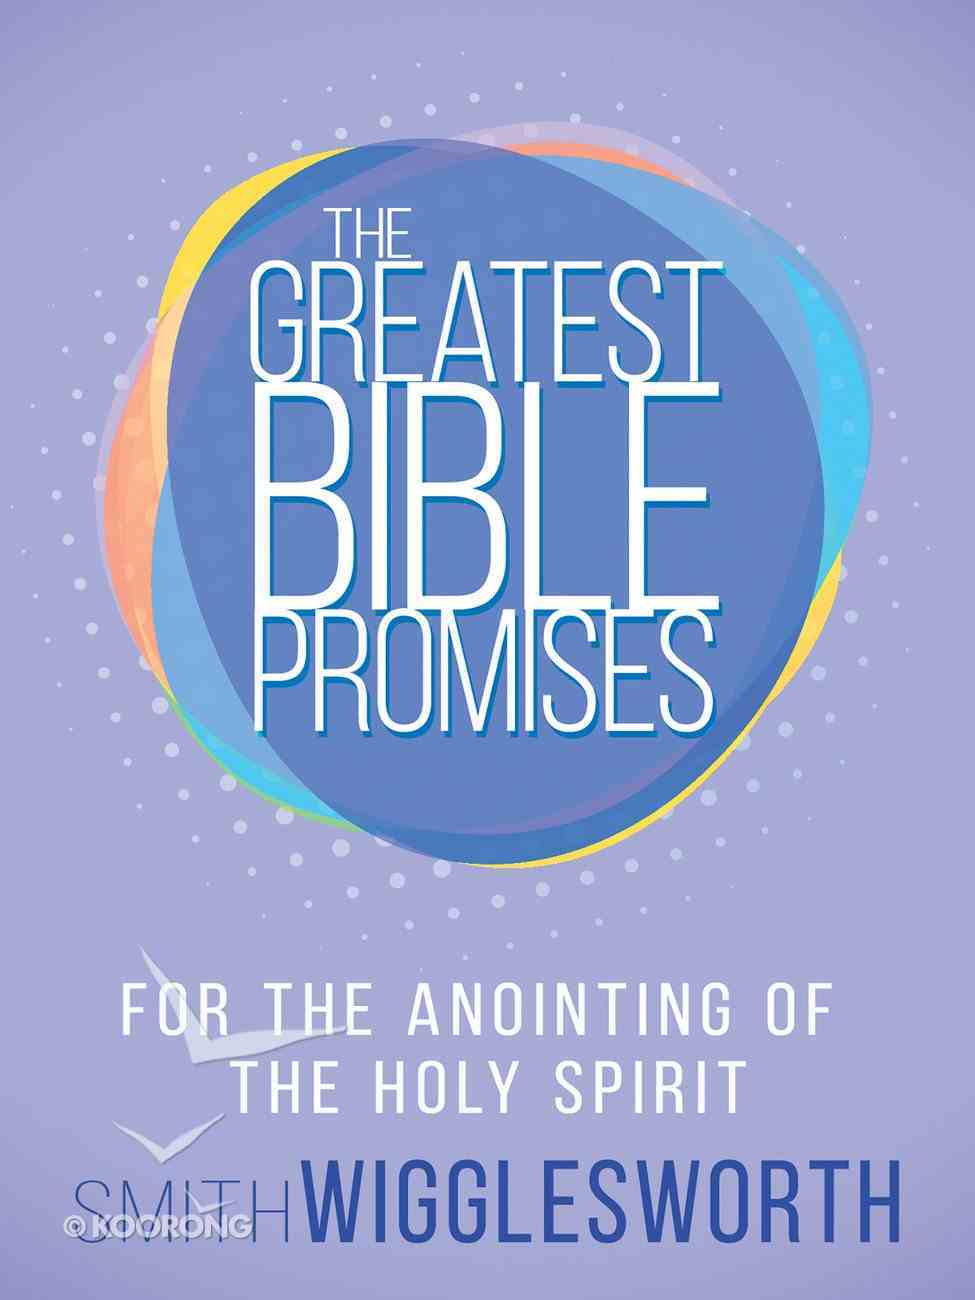 The Greatest Bible Promises For the Anointing of the Holy Spirit (The Greatest Bible Promises Series) eBook